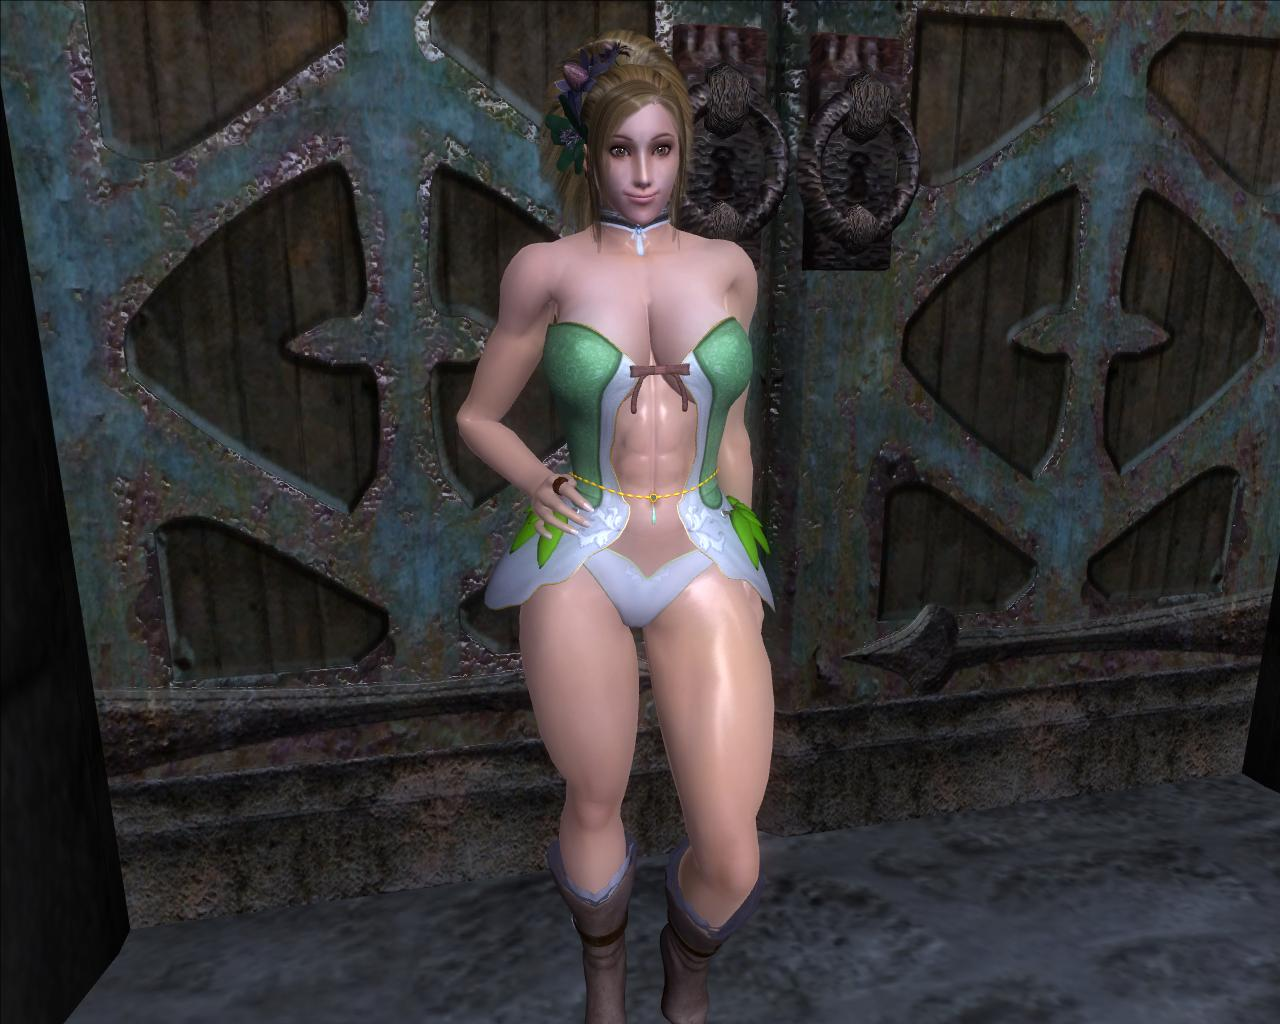 Elder scroll oblivion hg eye candy hardcore scene